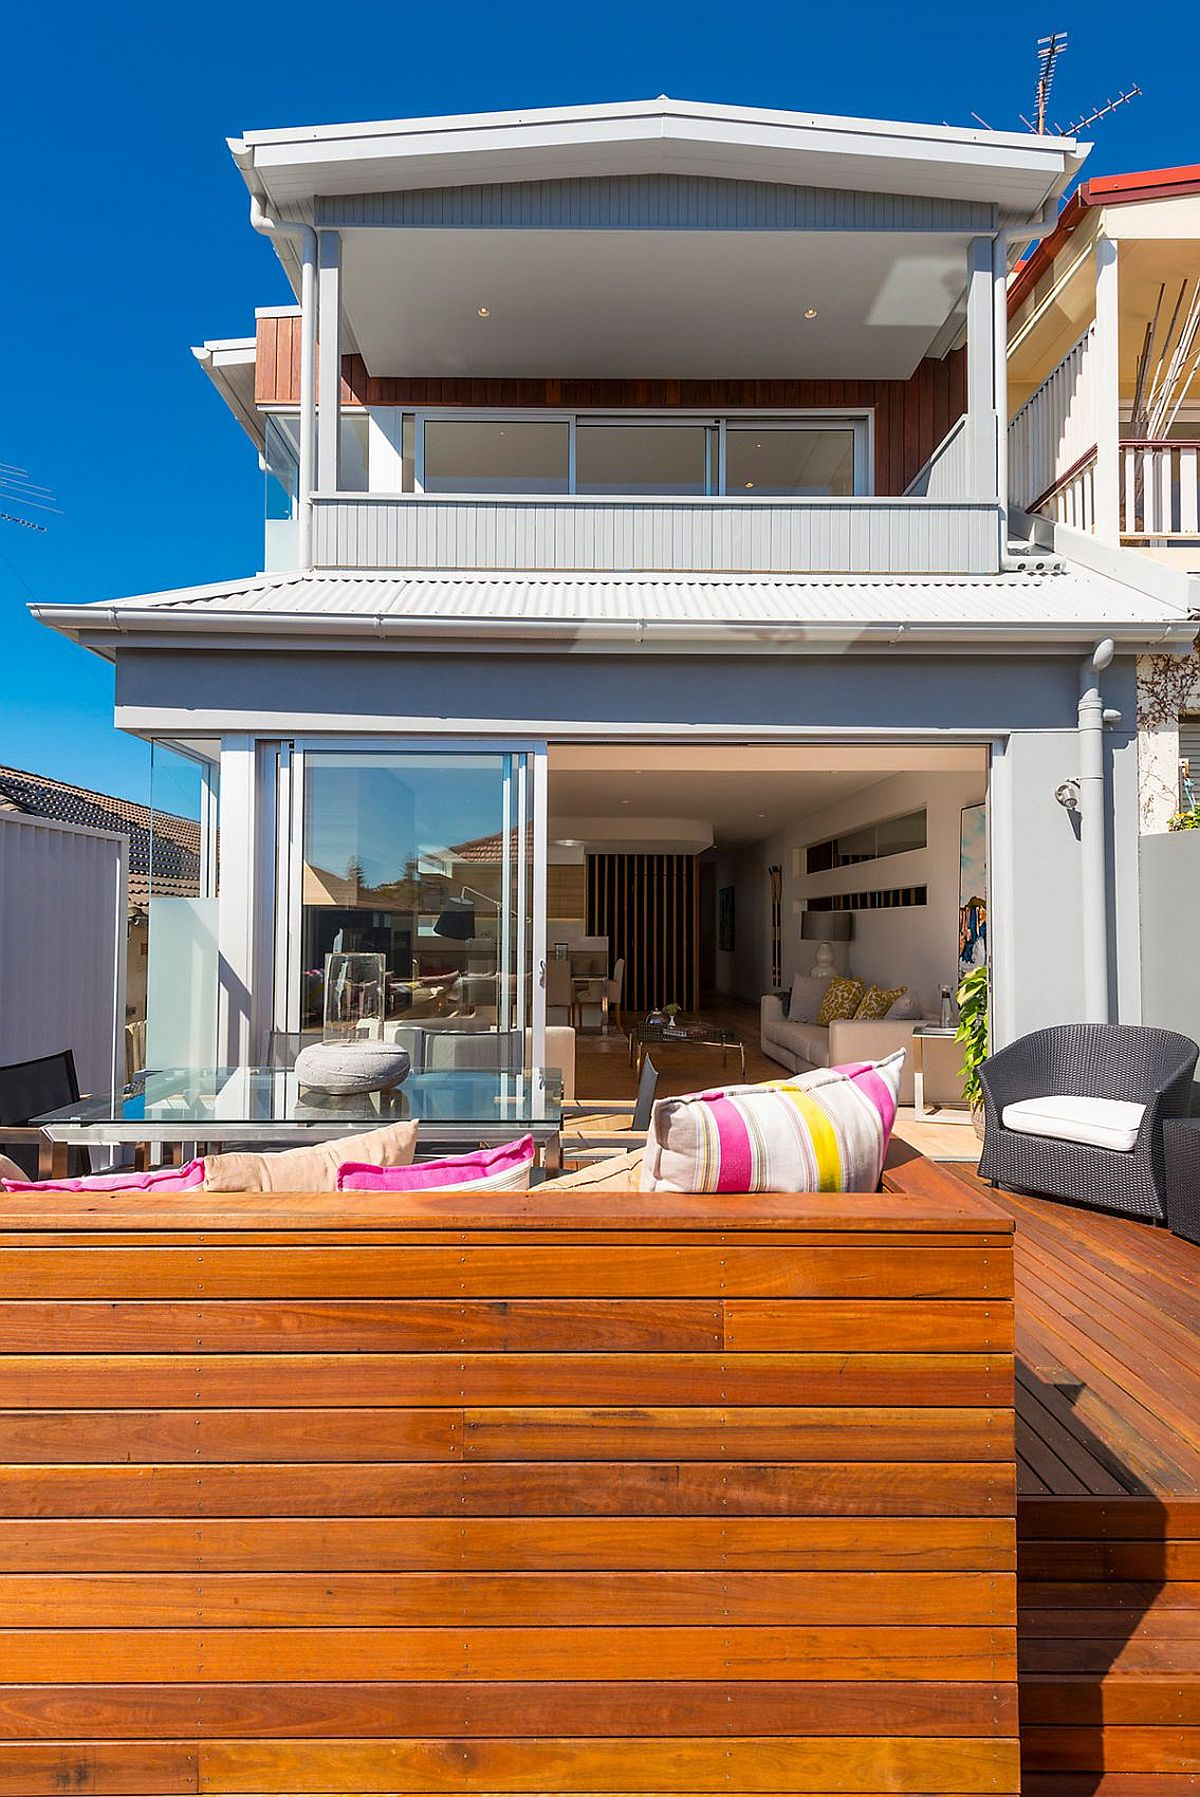 1960s Single level home with a contemporary renovation and addition Single Level 60's Sydney Home Gets a Beachy Modern Upgrade